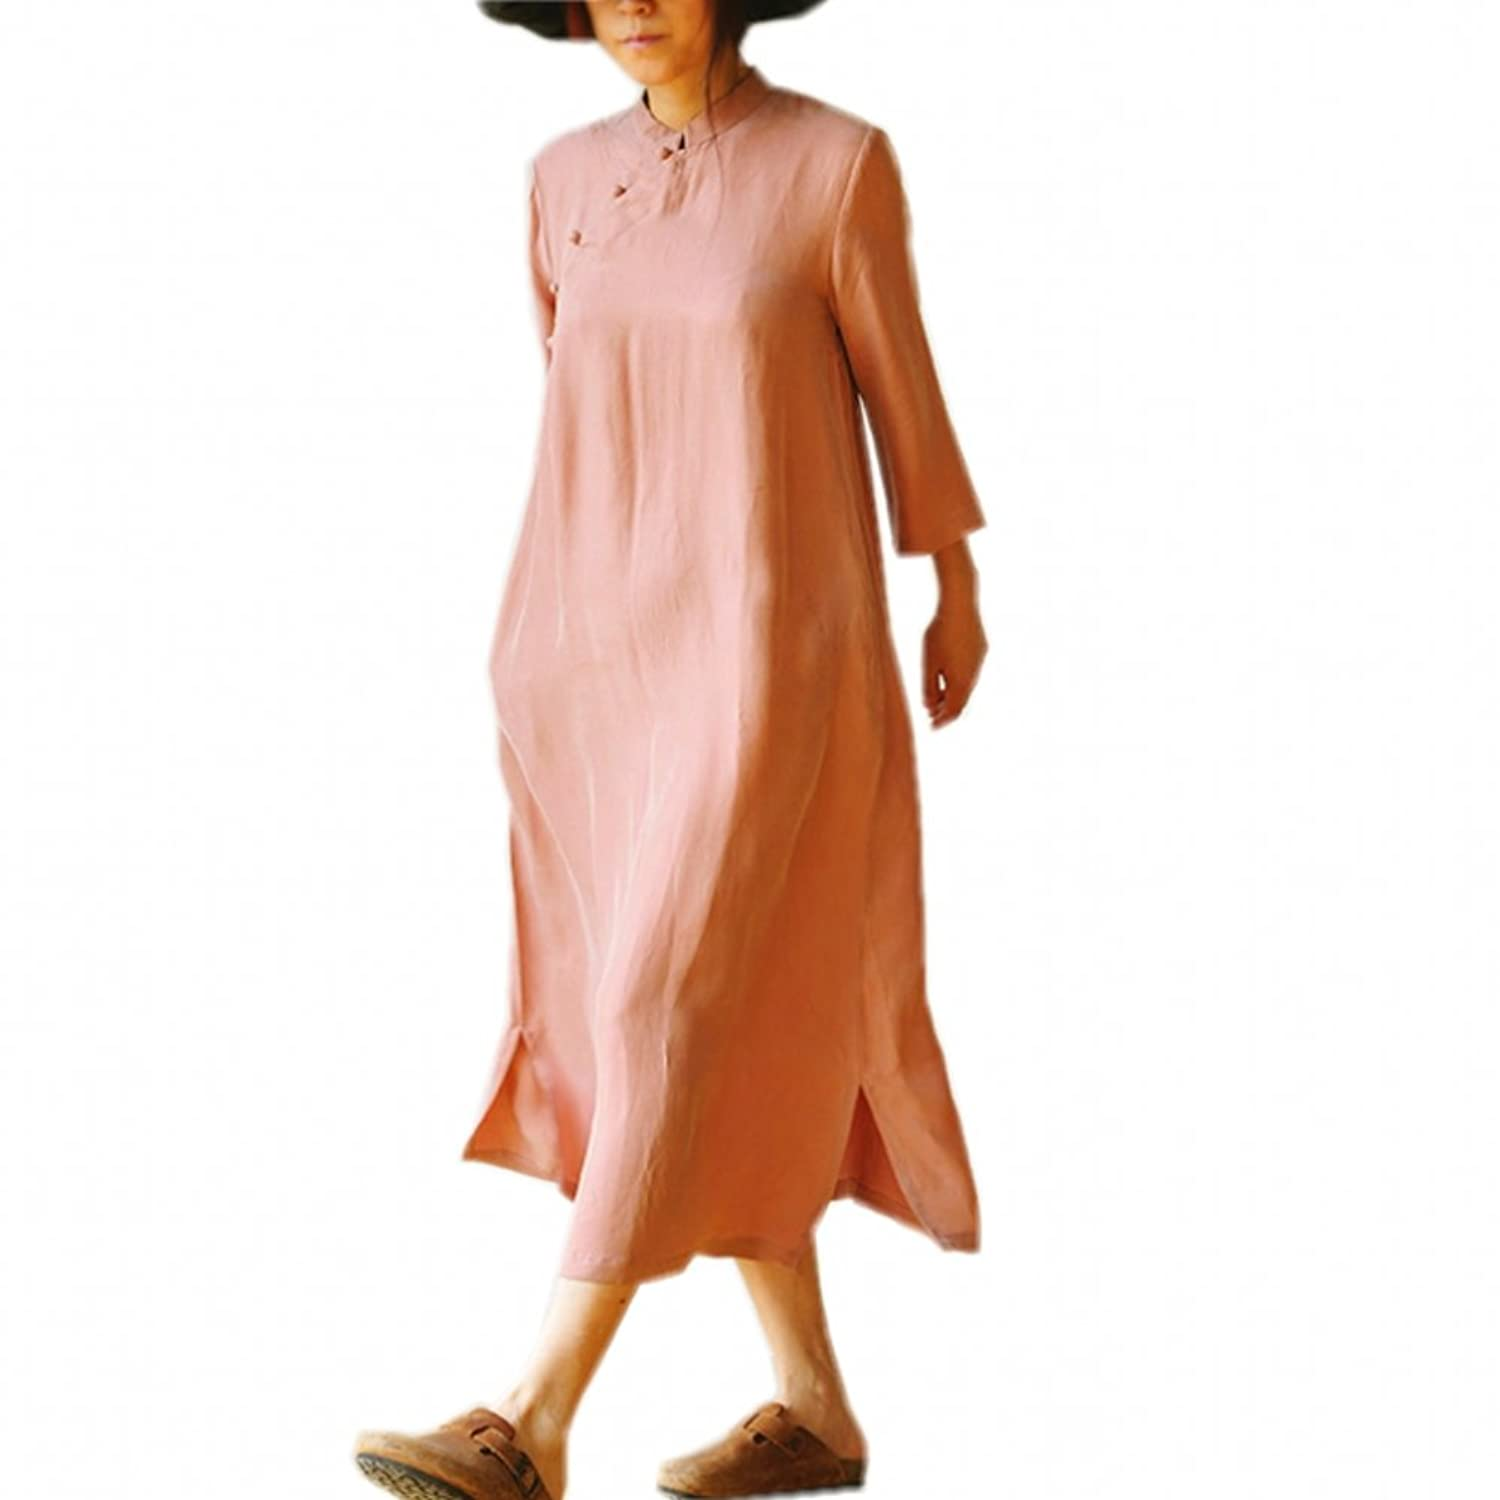 Katuo Women's Pink Cupro Silk A-linen Vintage Loose Classic Dress 3/4 Sleeve One Size